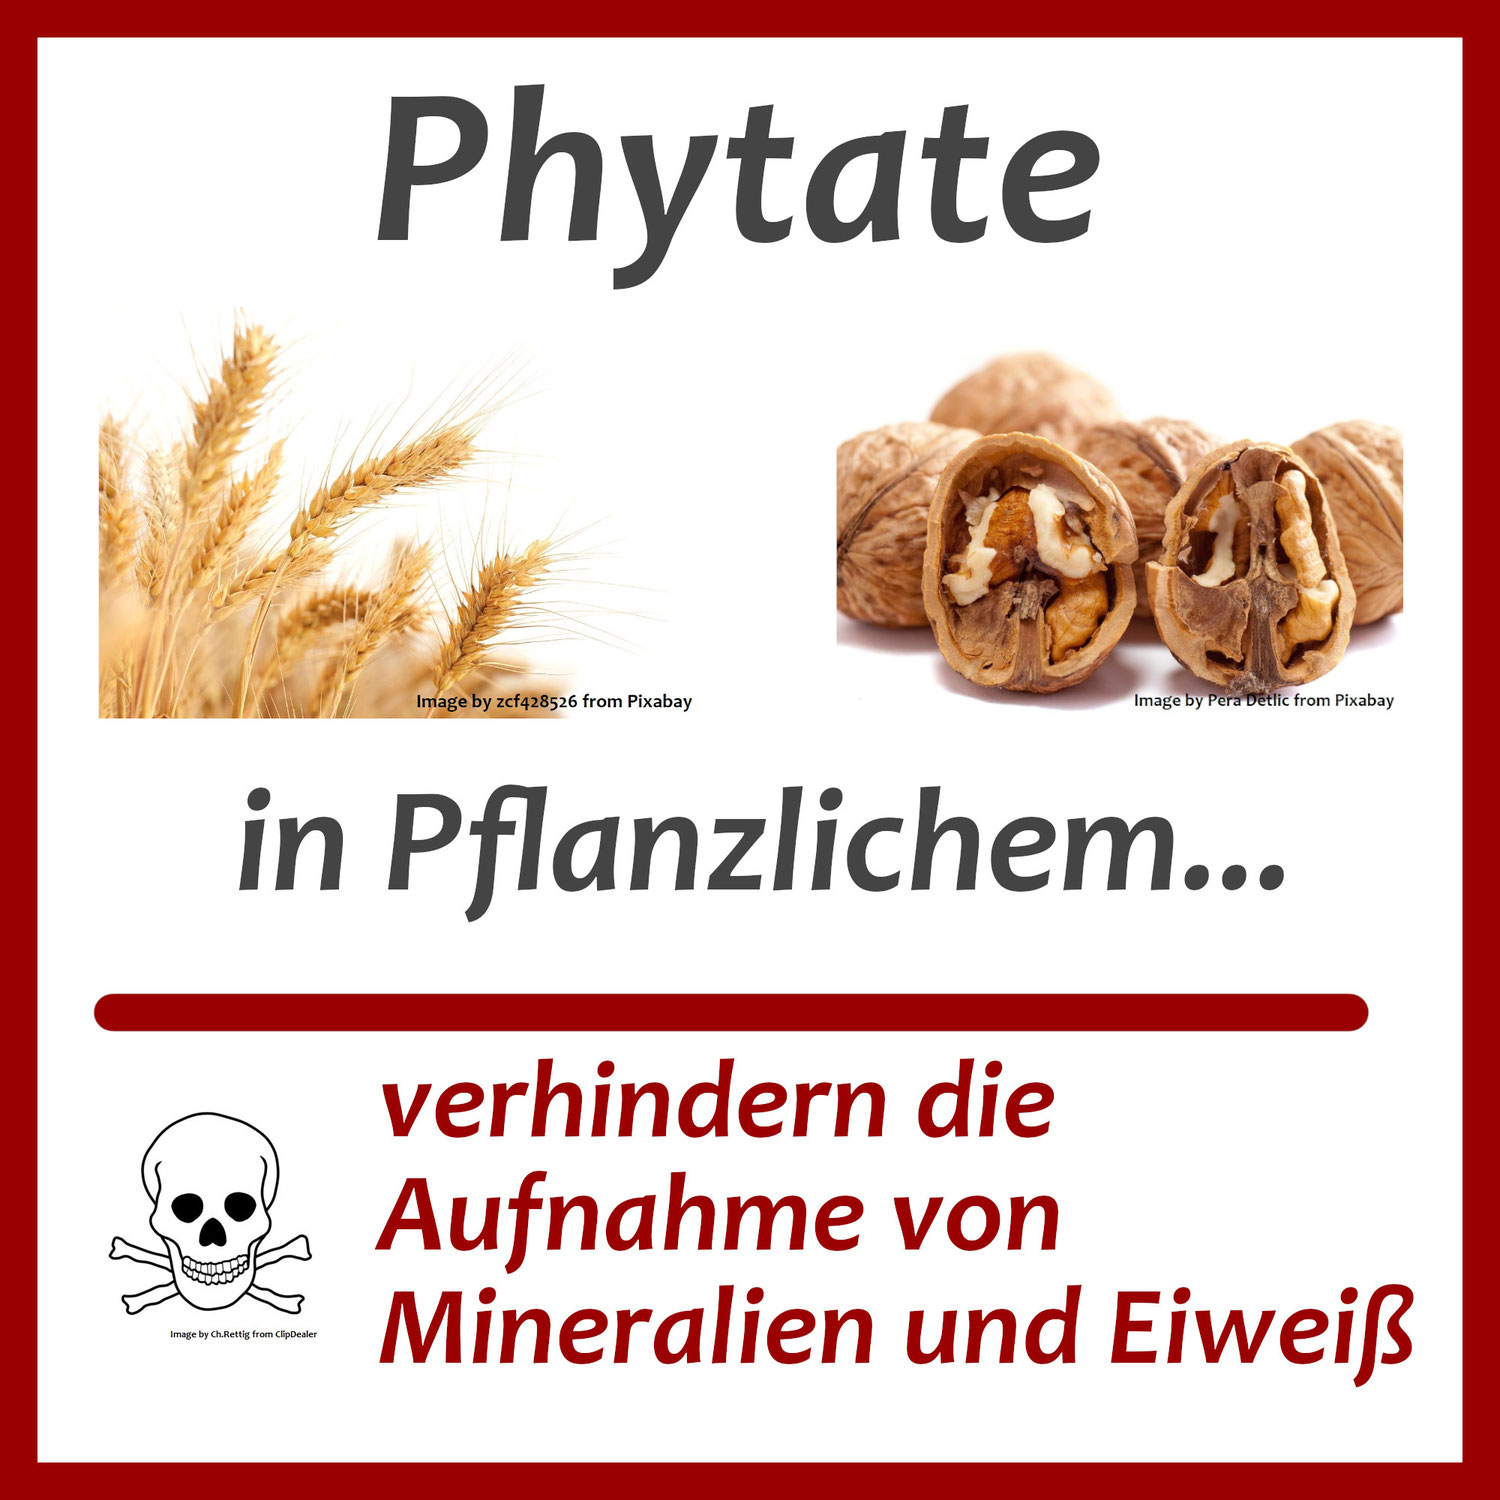 Phytate